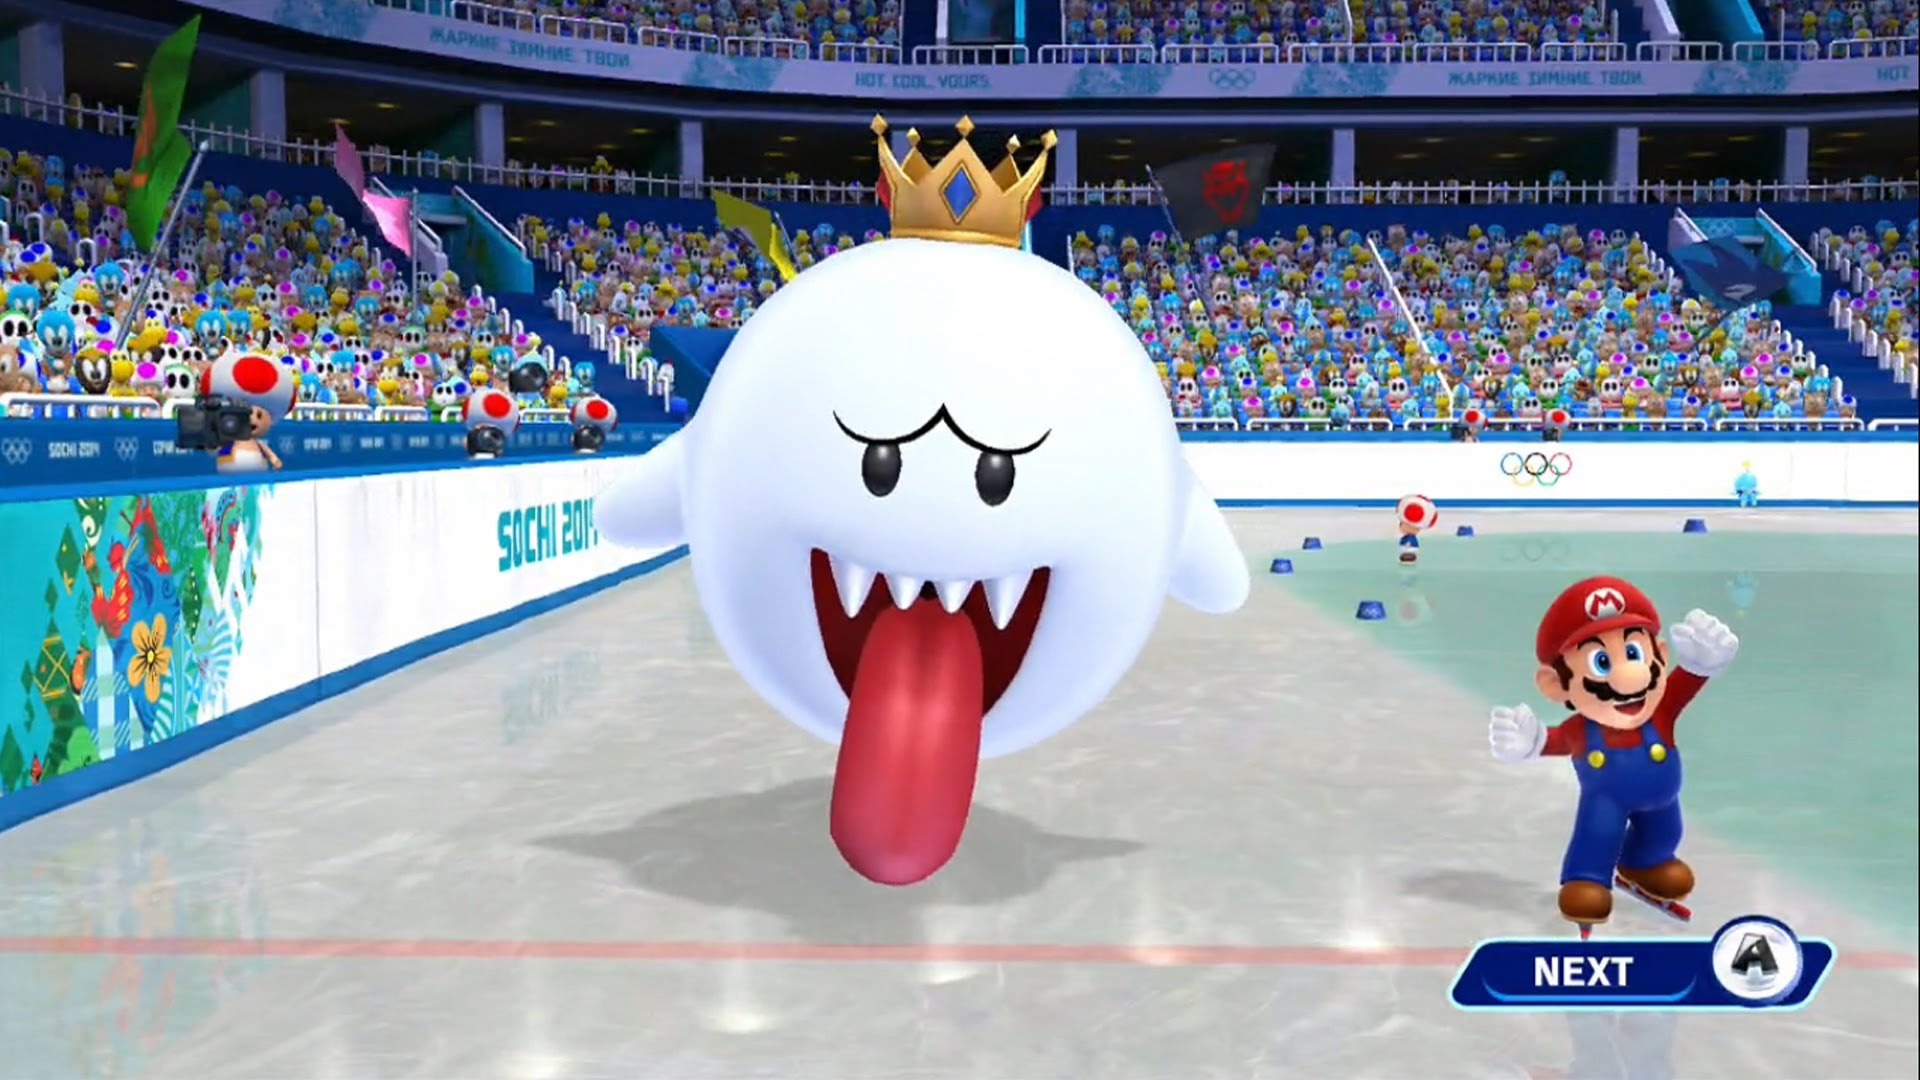 Mario and Sonic at the Olympic Winter Games Wii   RetroGameAge